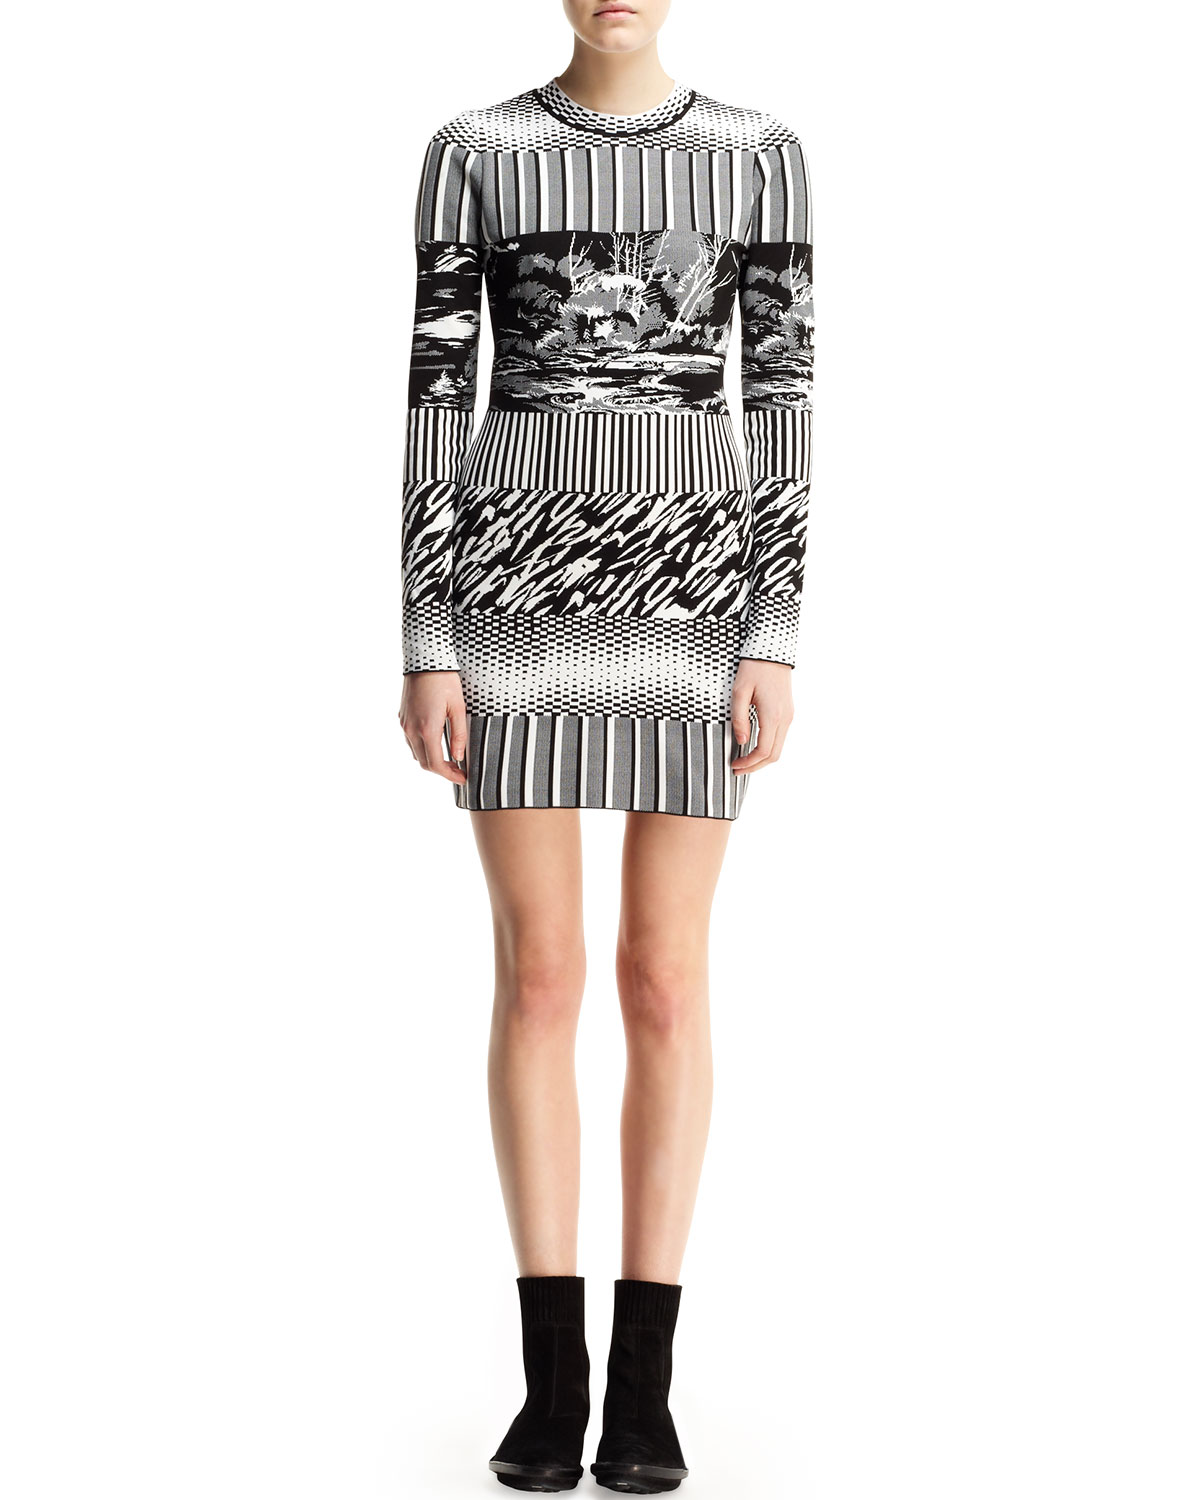 Balenciaga Long-Sleeve Mixed-Print Dress